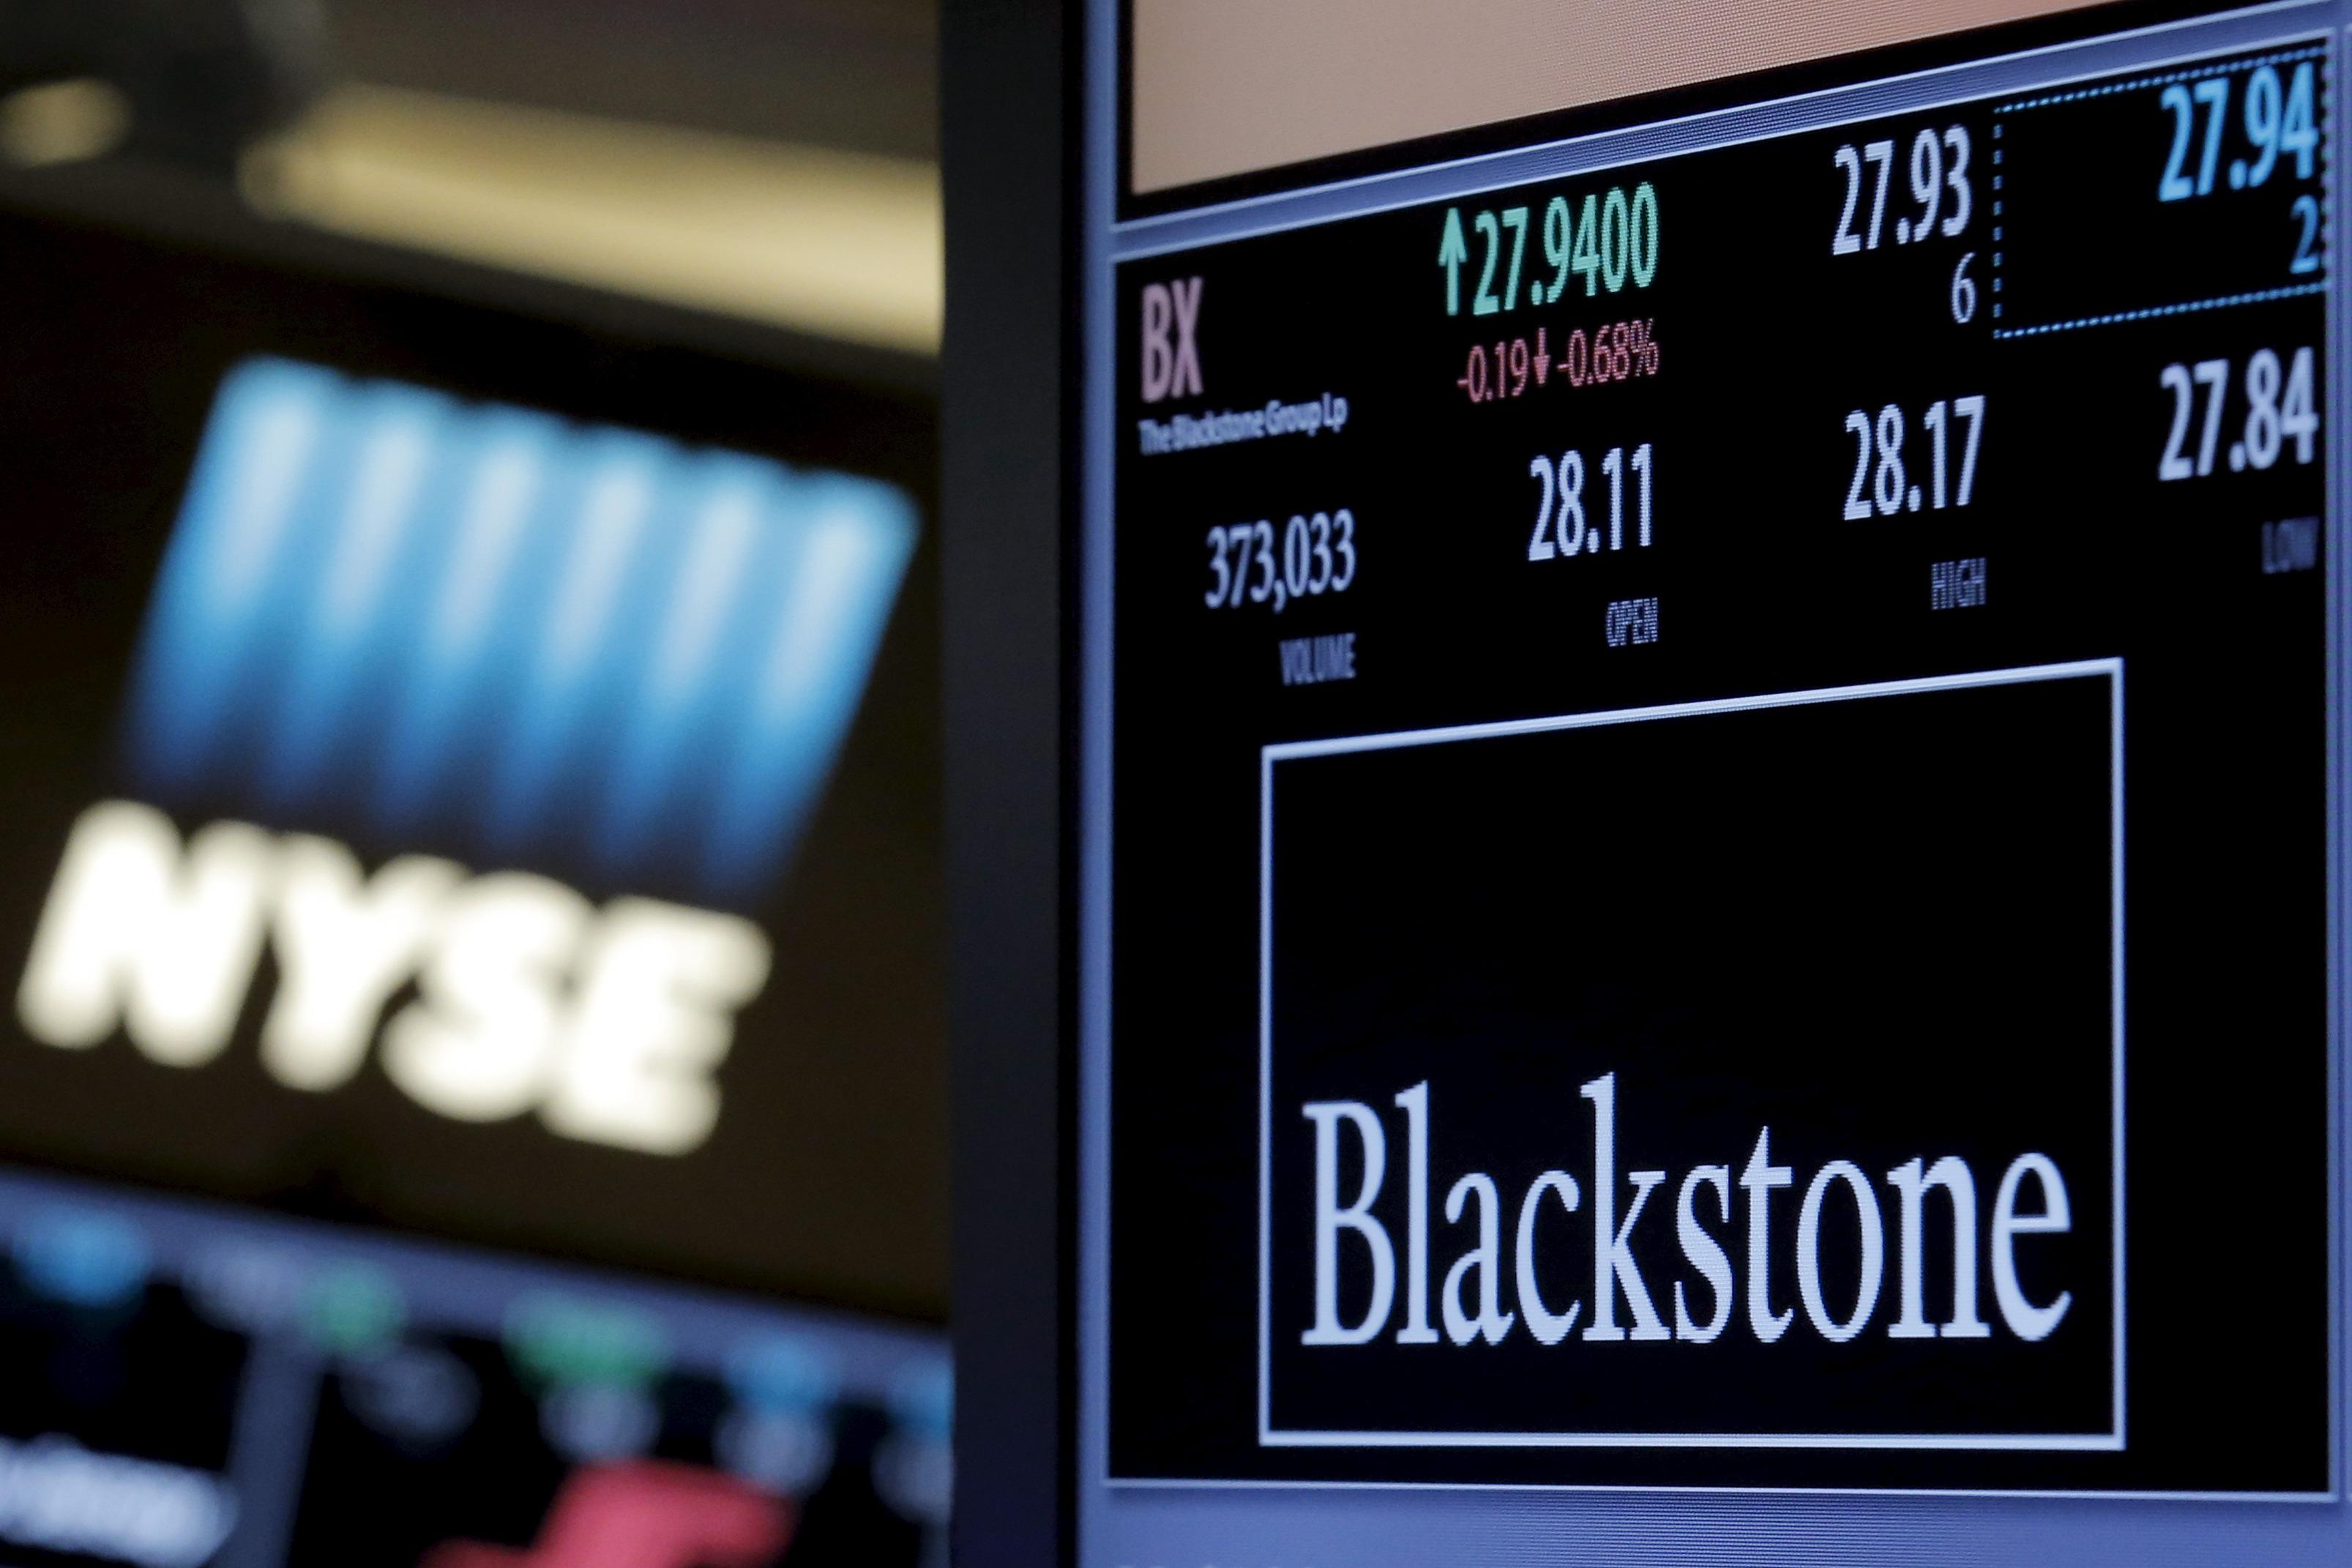 Blackstone turns up heat on hotelier Unizo with tender offer